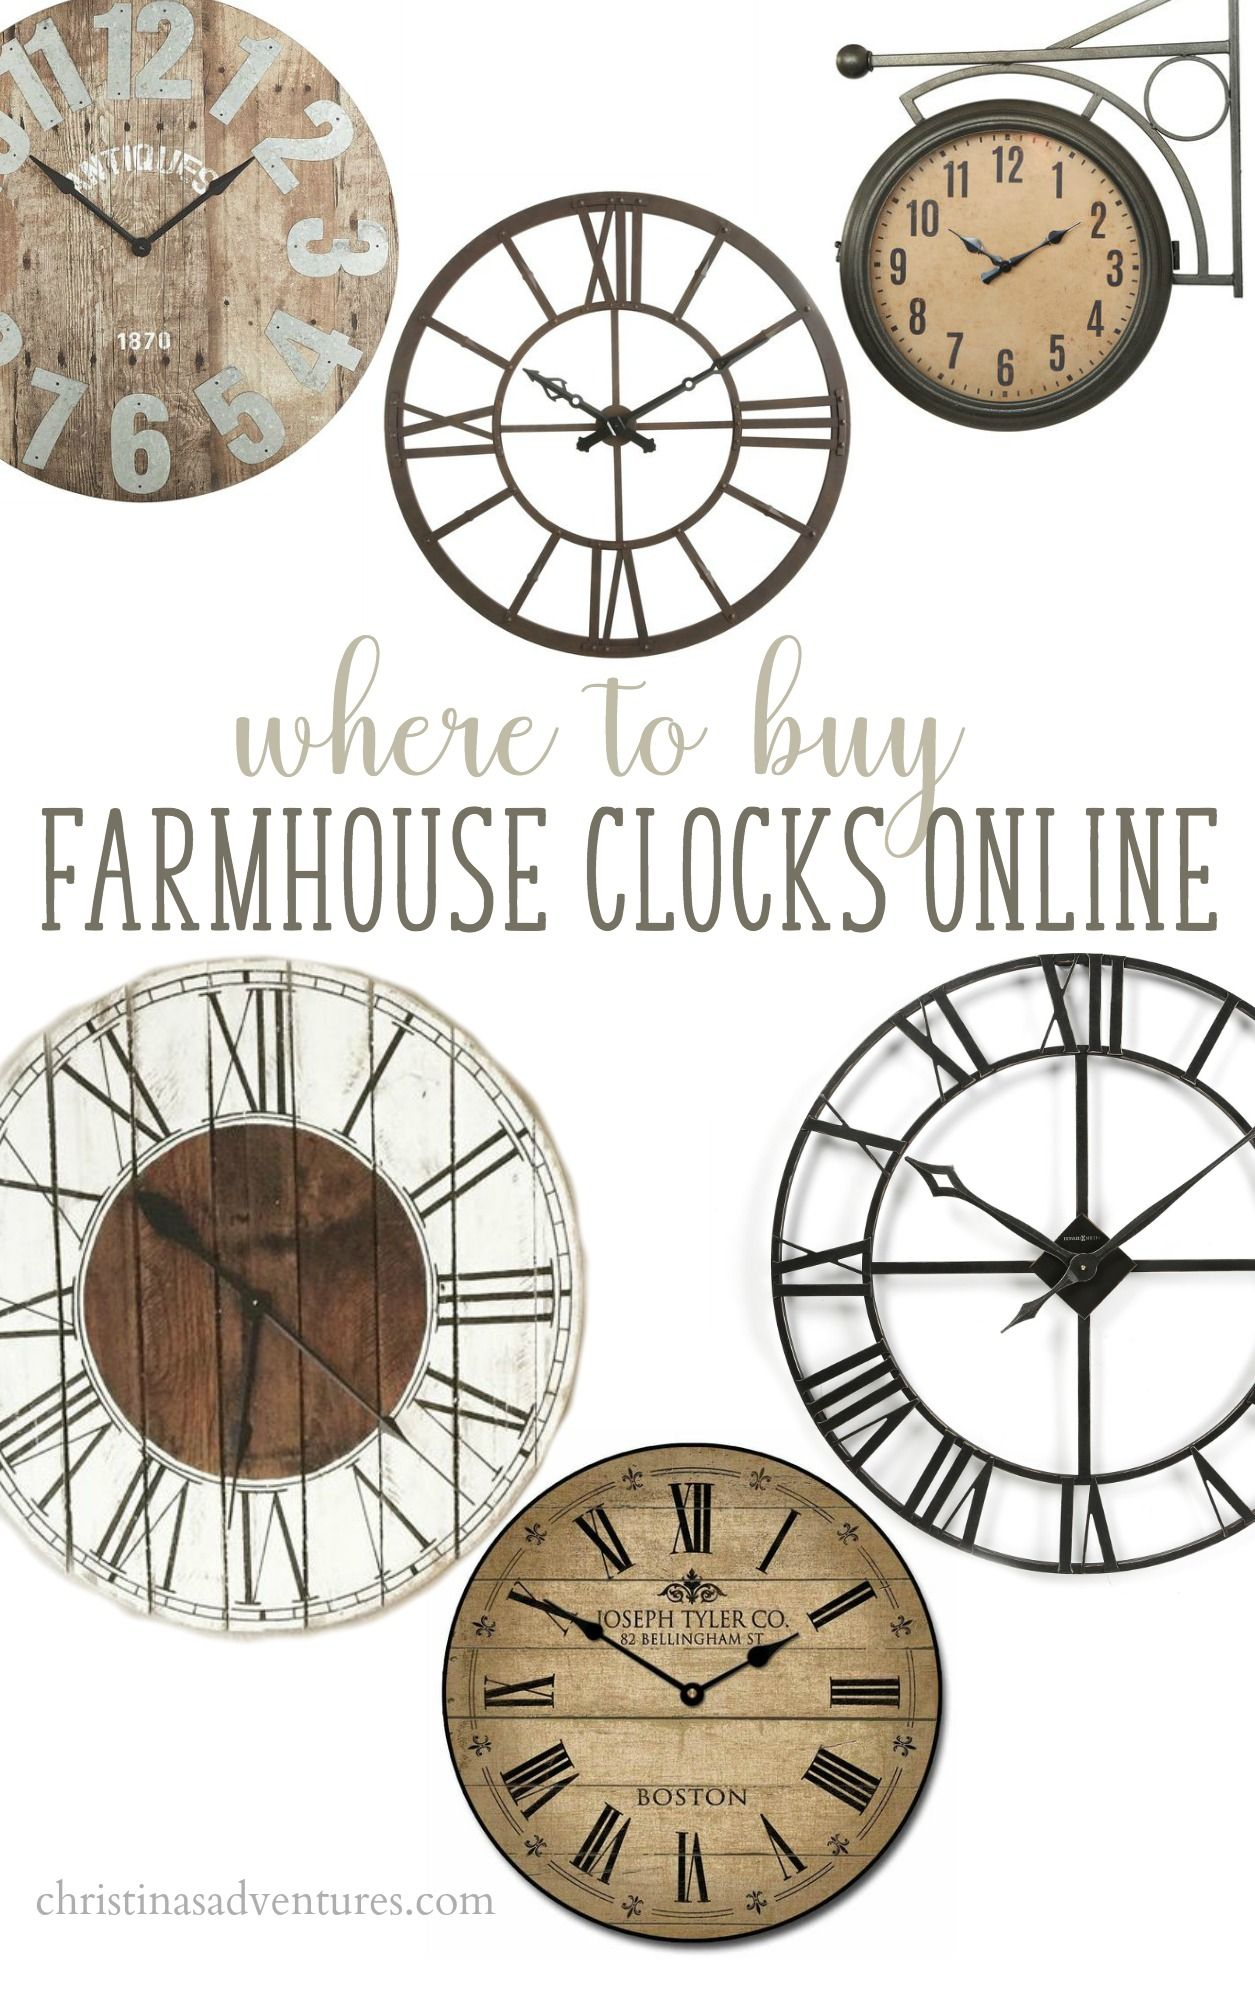 Where To Buy Farmhouse Wall Clocks Christina Maria Blog Wall Clocks Living Room Farmhouse Wall Clocks Clock Wall Decor